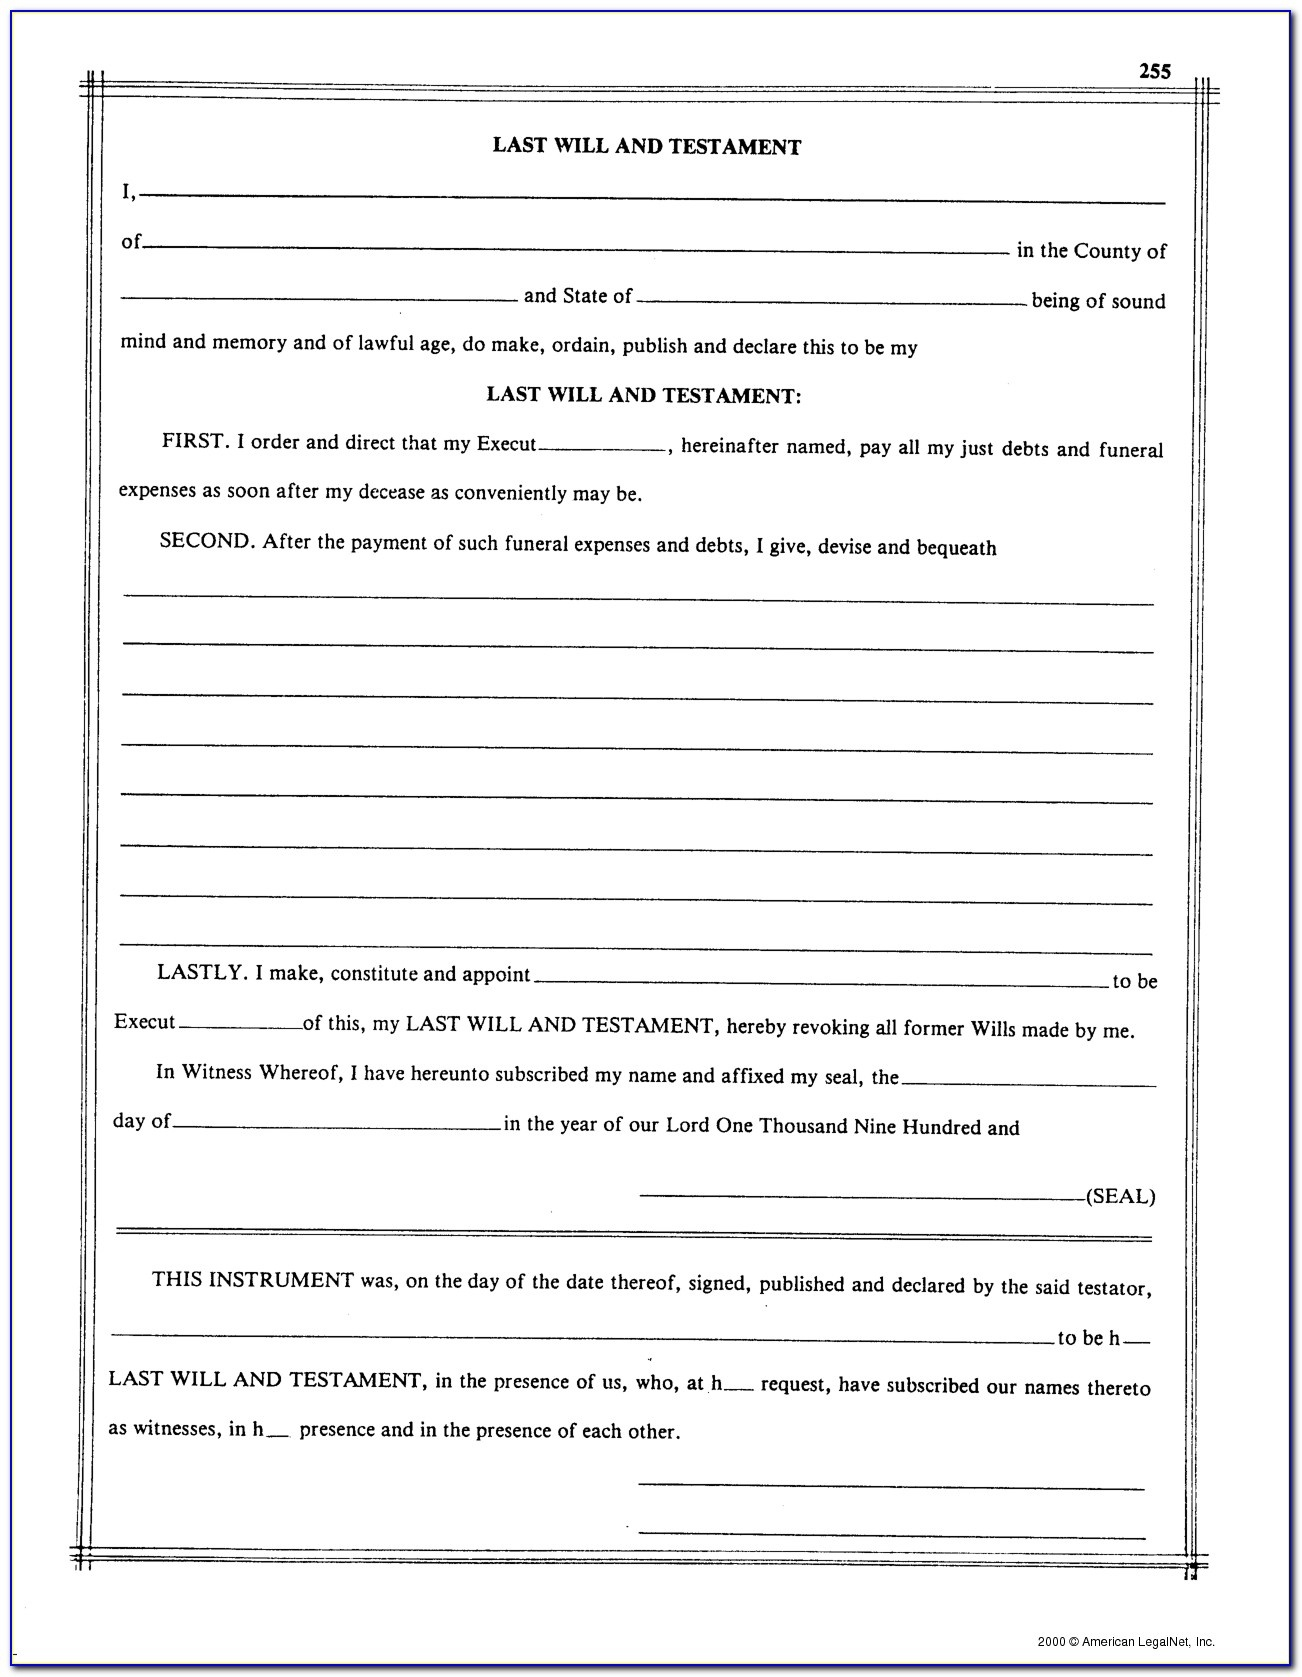 Free Printable Blank Last Will And Testament Forms - Form : Resume - Free Printable Last Will And Testament Blank Forms